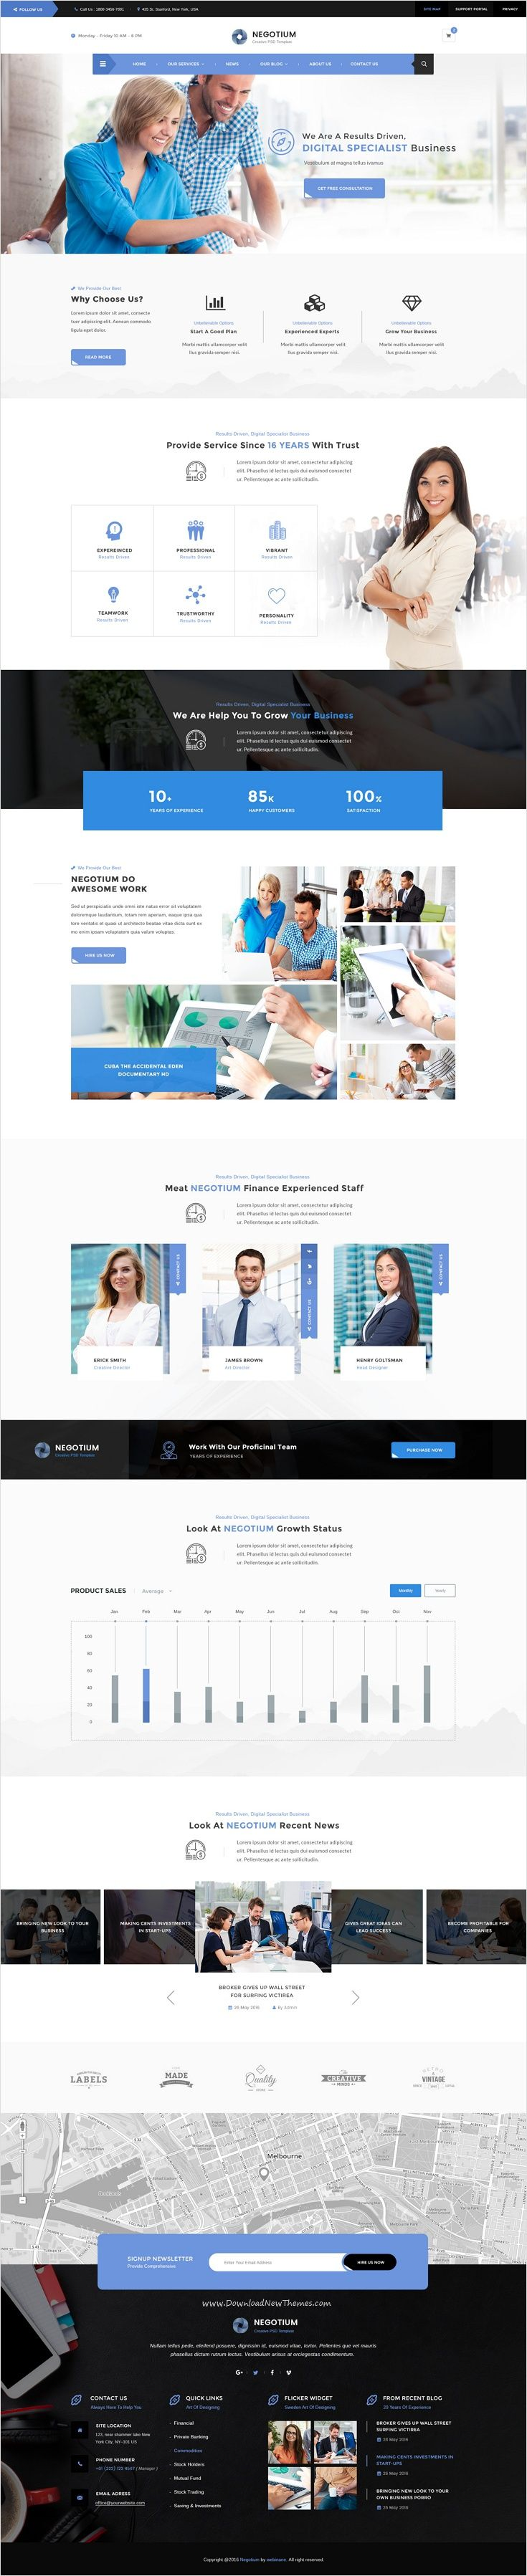 Negotium is a perfect #PSD template for #financial companies, #business firms, investment, consulting, broker agencies website with 3 unique homepage layouts and 14 organized PSD pages download now➩ https://themeforest.net/item/negotium-business-finance-consultation-multipurpose-psd-template/16892214?ref=Datasata